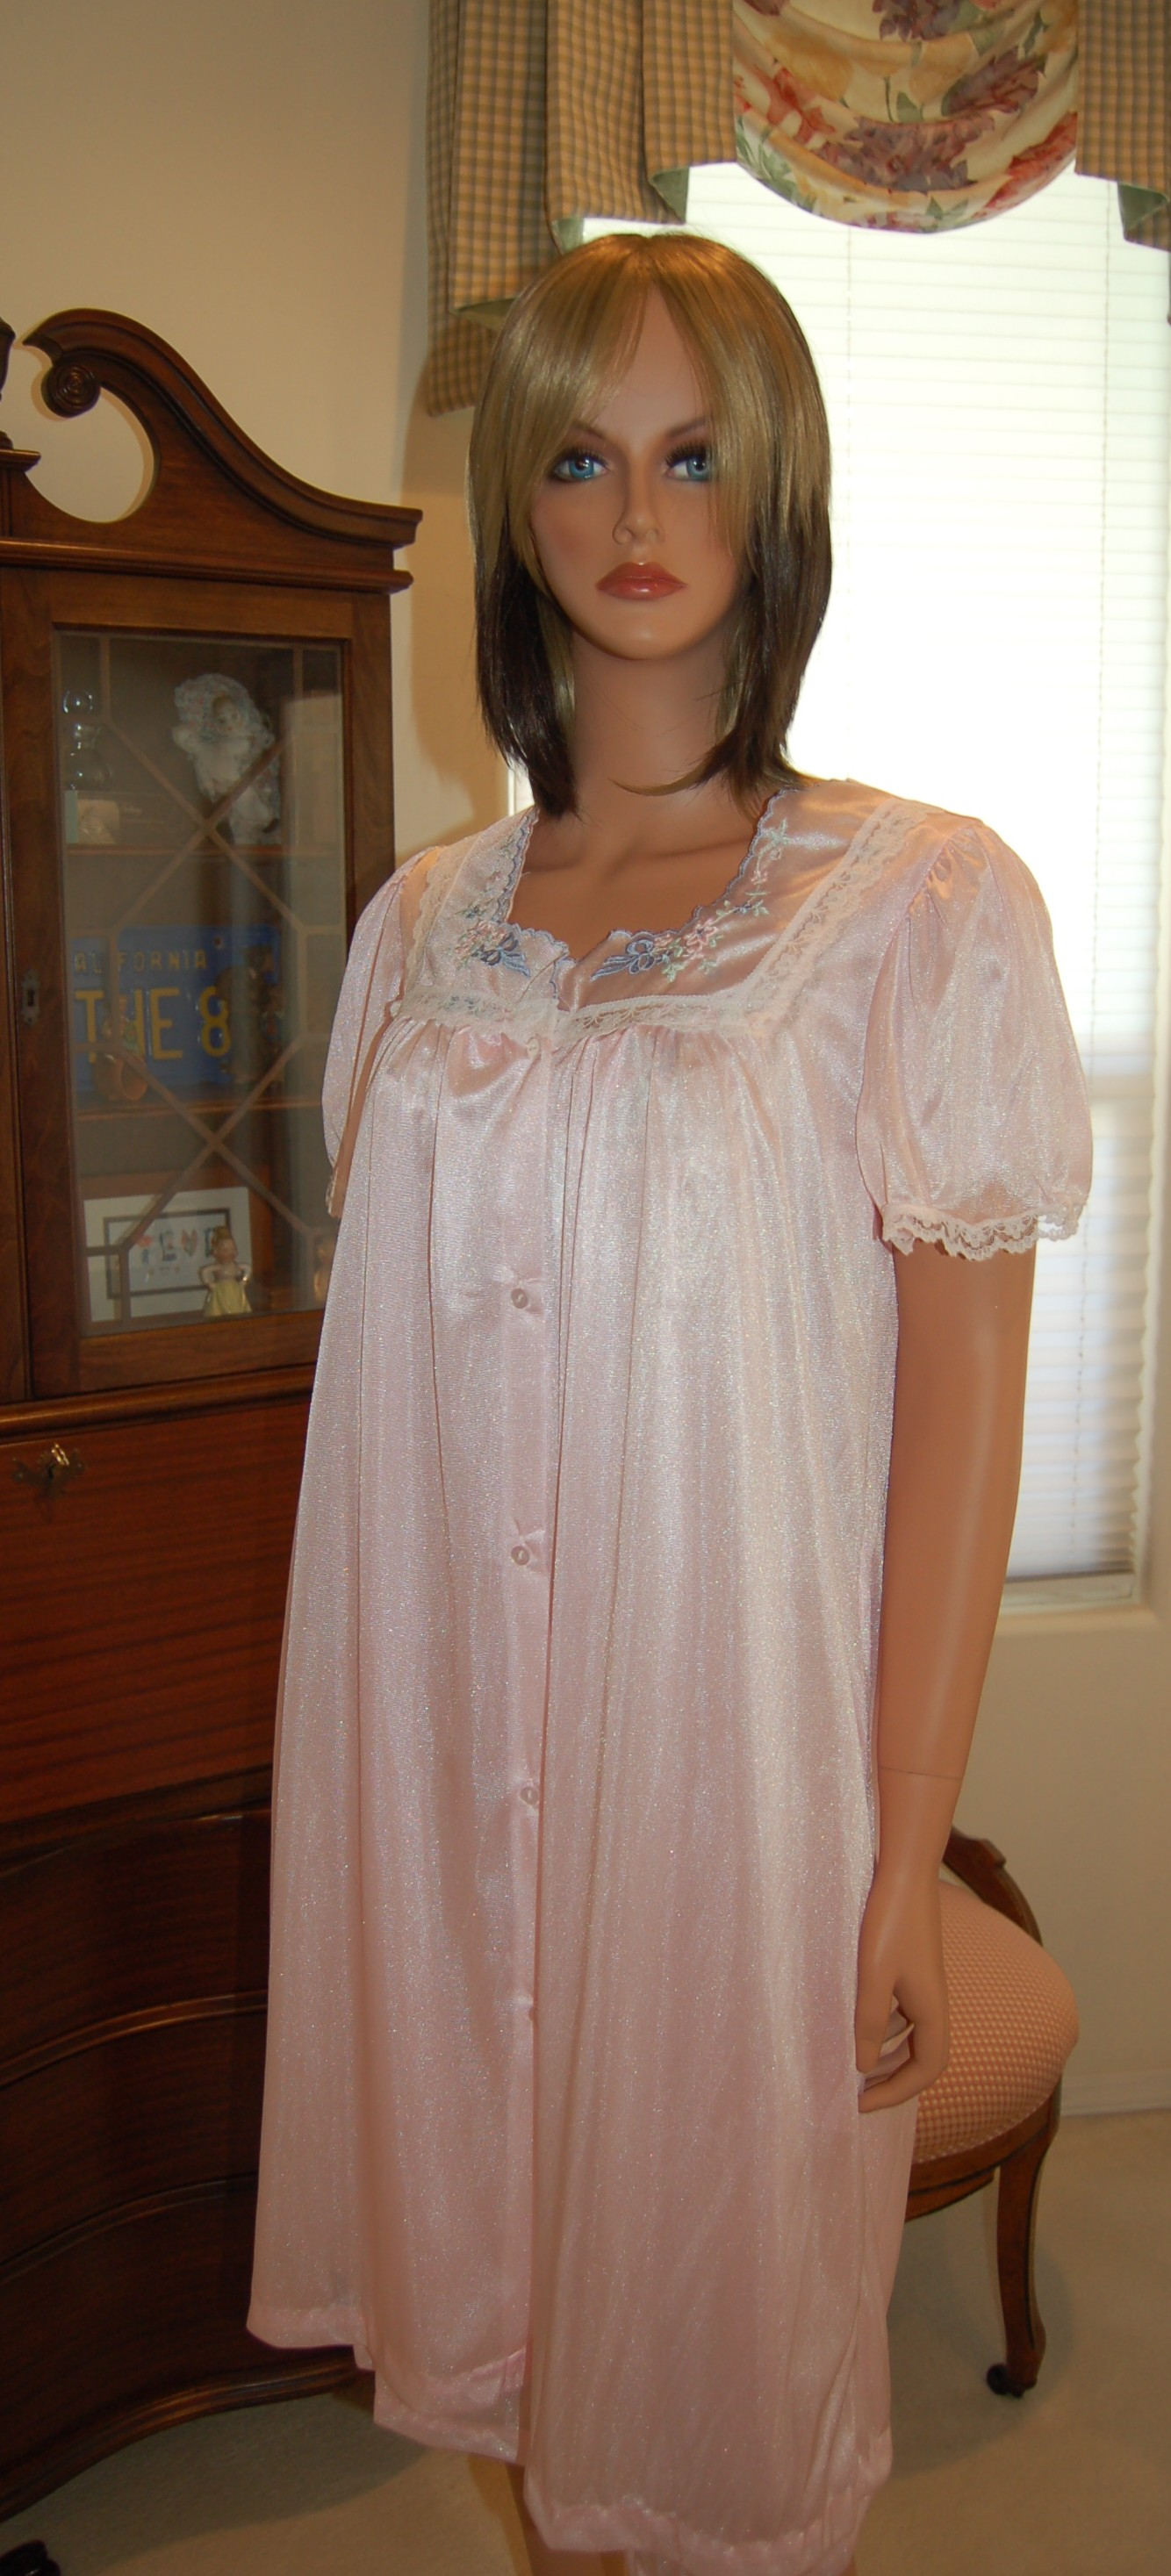 Matching robe for 3418 nightgown. This robe has in-seam pockets. It s a perfect  mate for the nightgown. Matching colors. Small - 4X. .  31.99 -  31.99. 65c6d9ef5